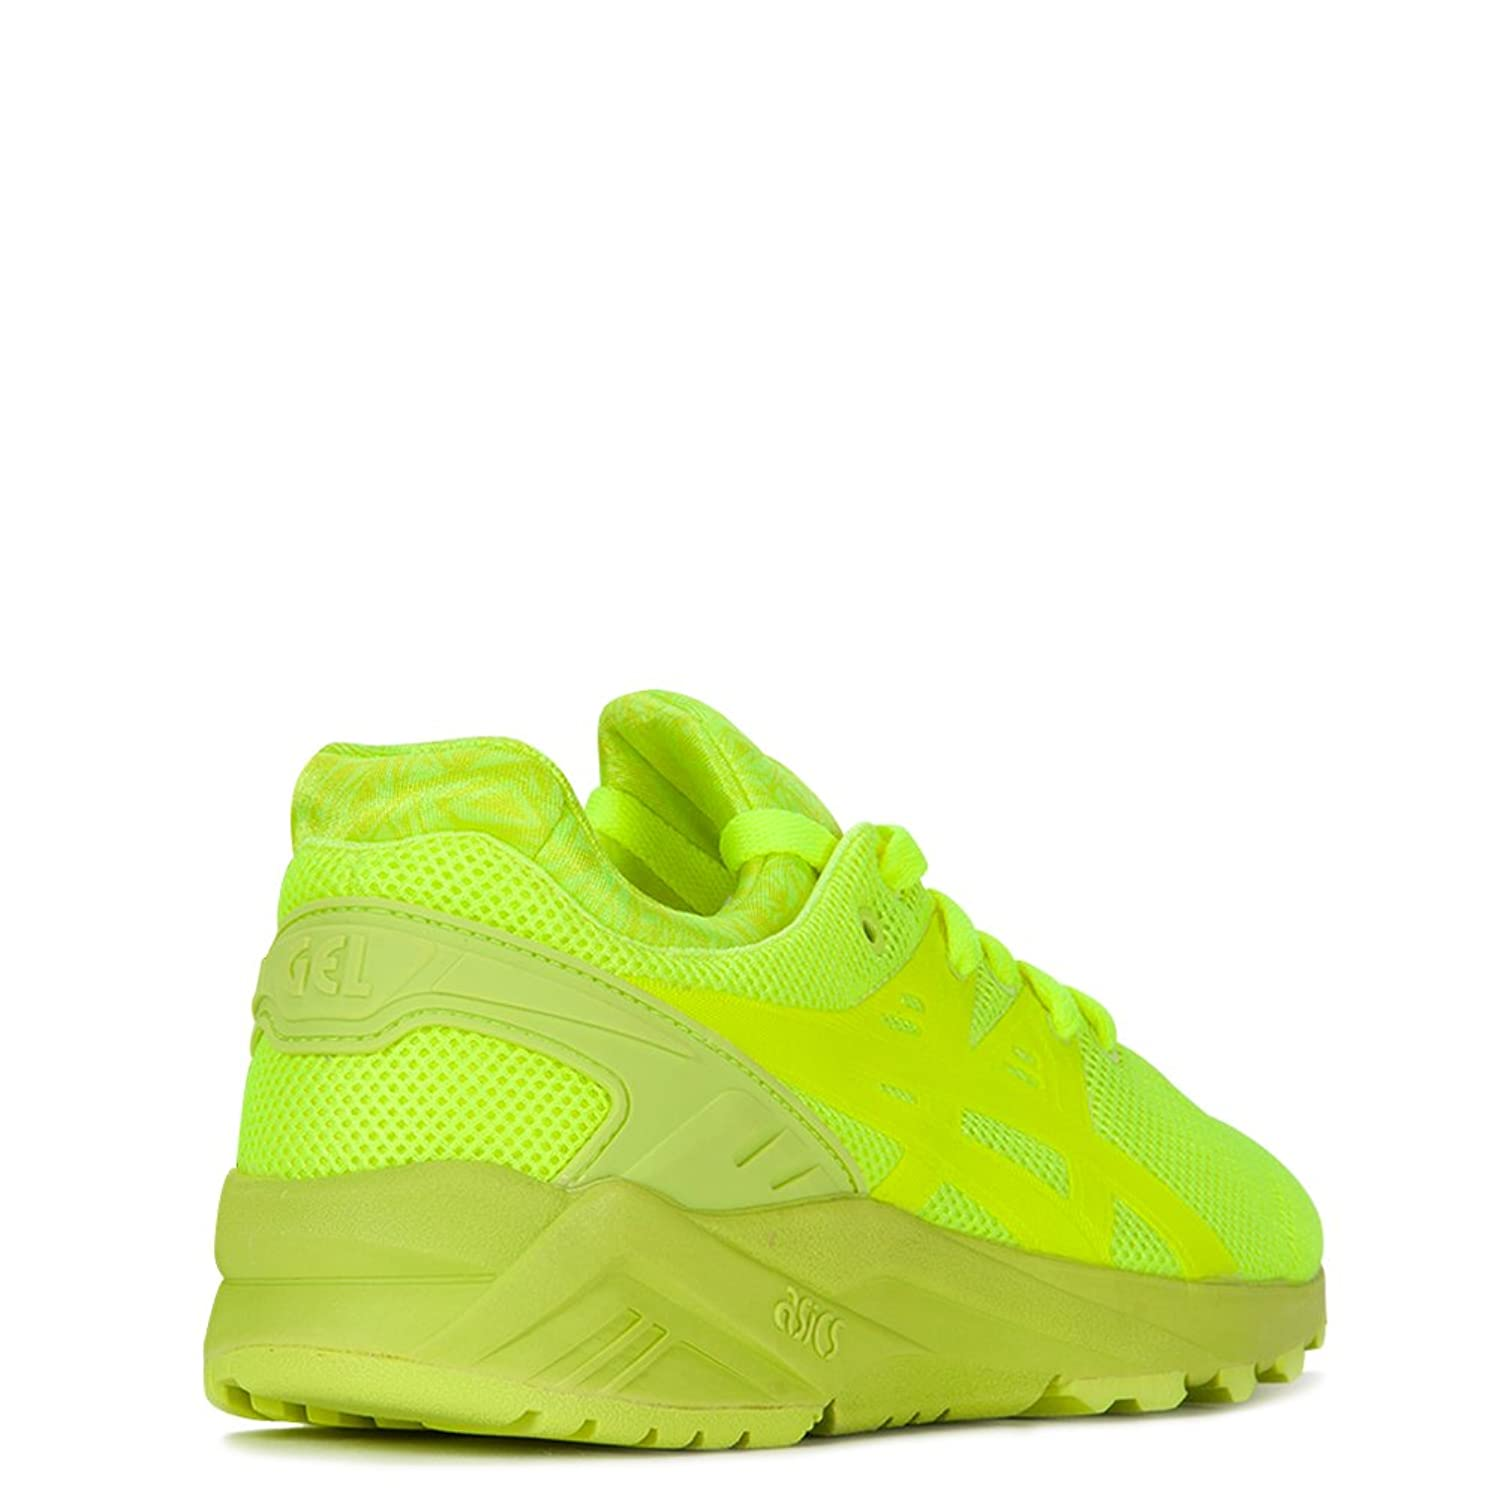 bd7fc1b7ea3c2 Asics Men's Gel Kayano Trainer Shoes H51DQ.0505 Lime/Lime